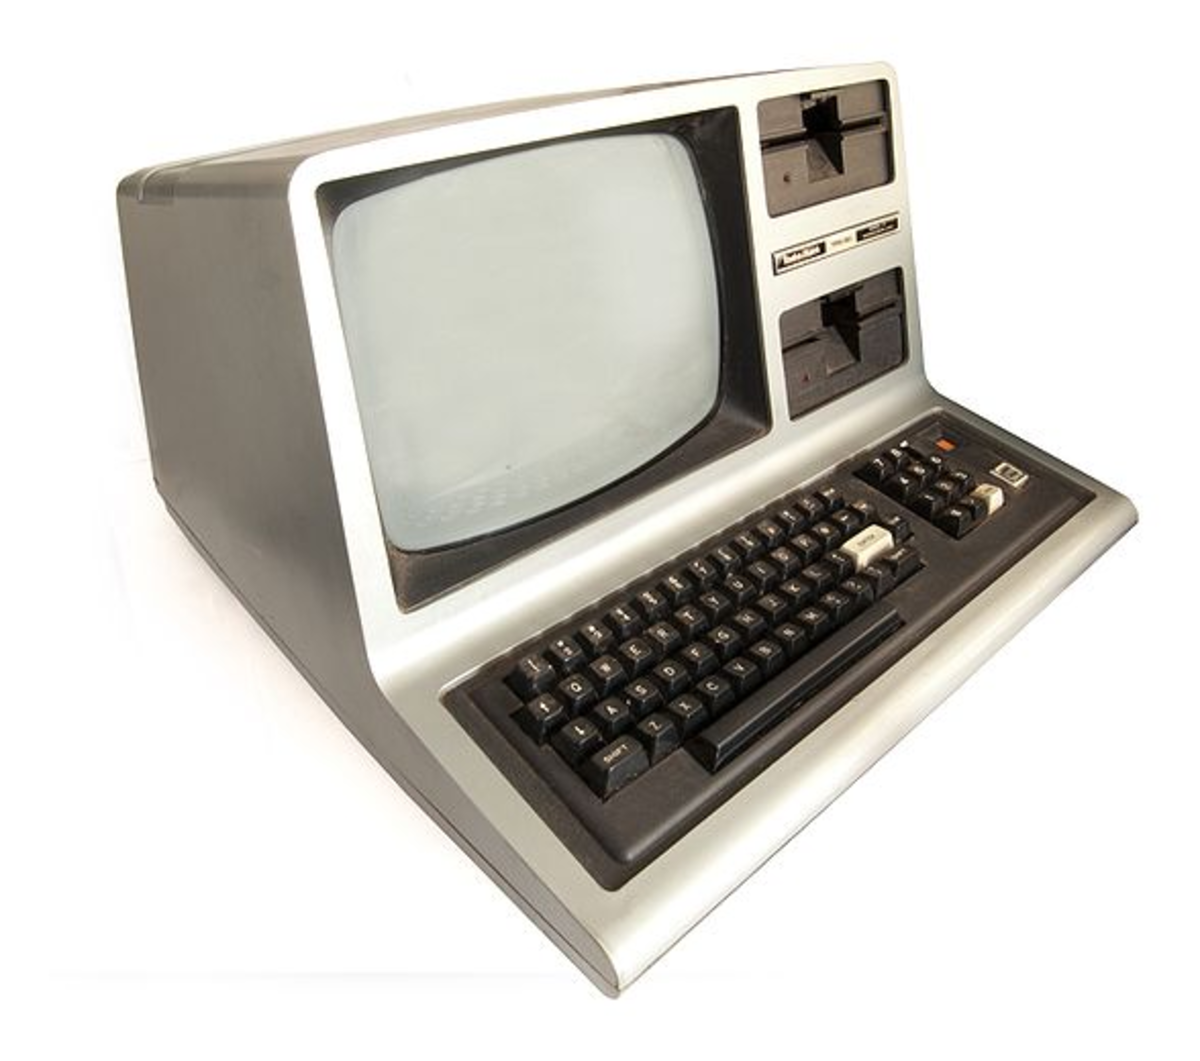 TRS-80 Model 3, another personal computer of the 70s.